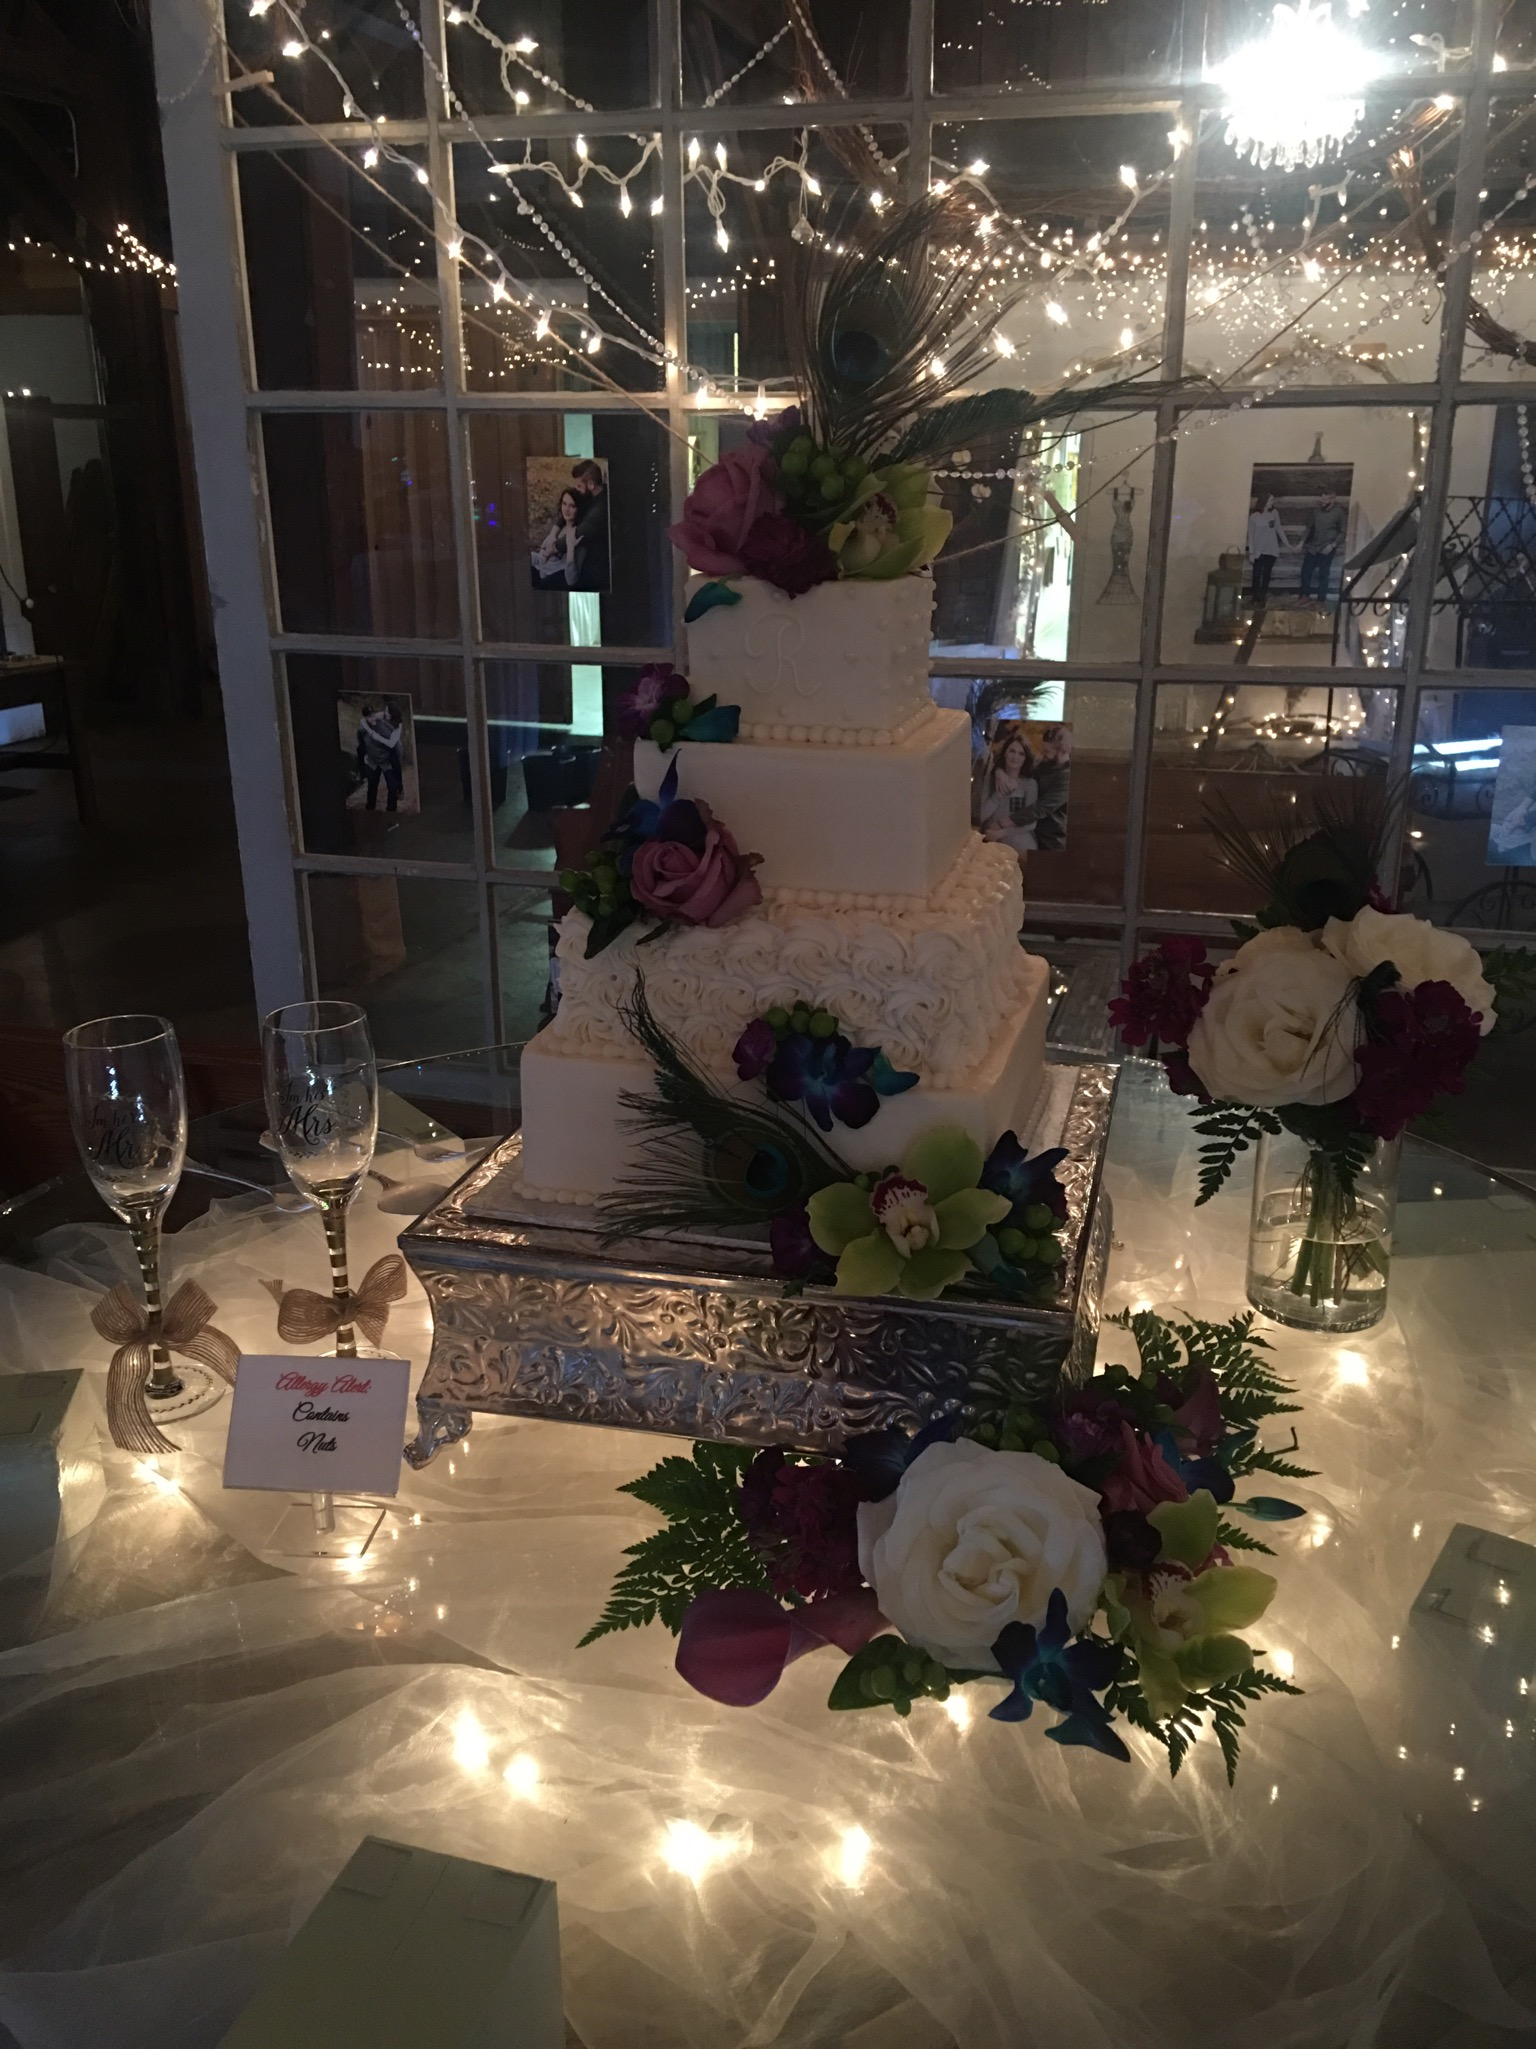 Beautiful wedding cake with window backdrop